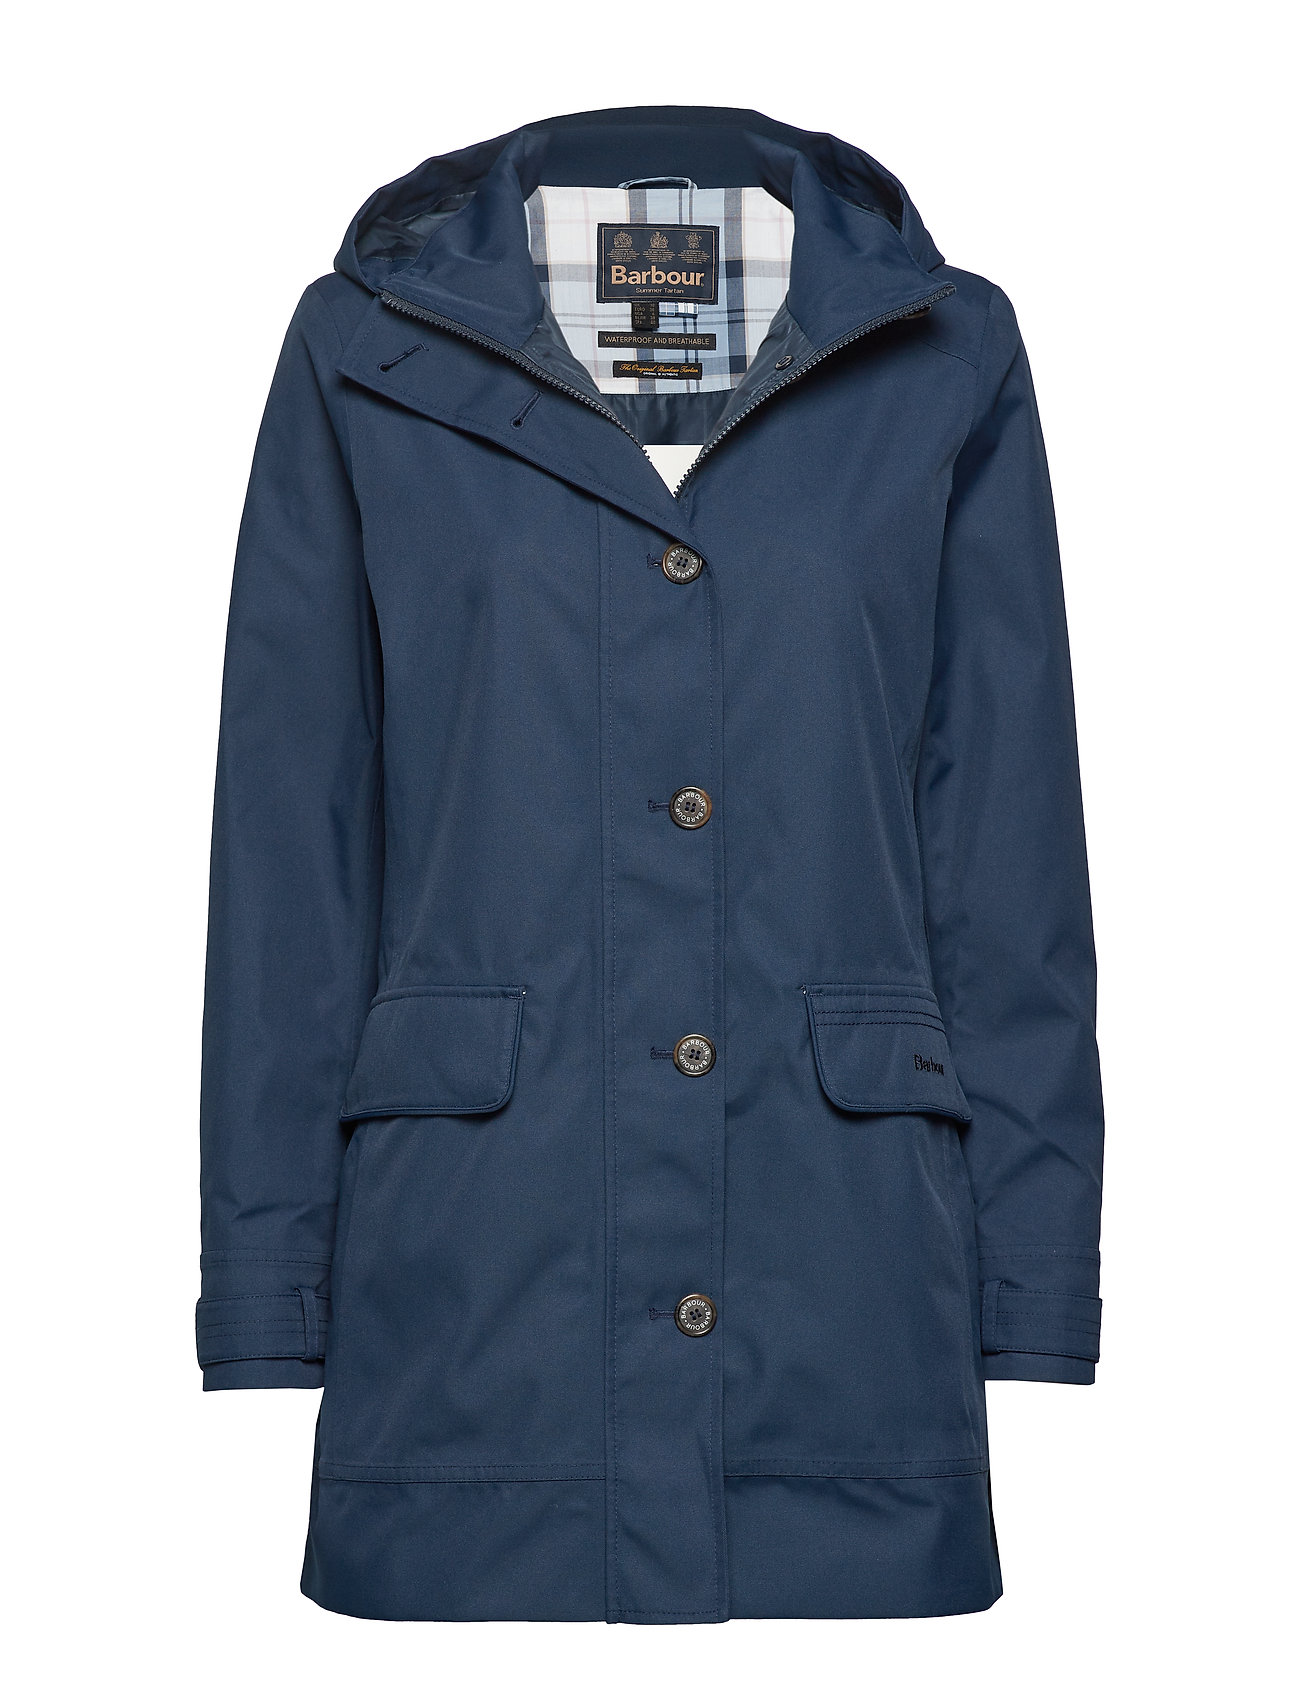 Barbour Barbour Backwater Jkt